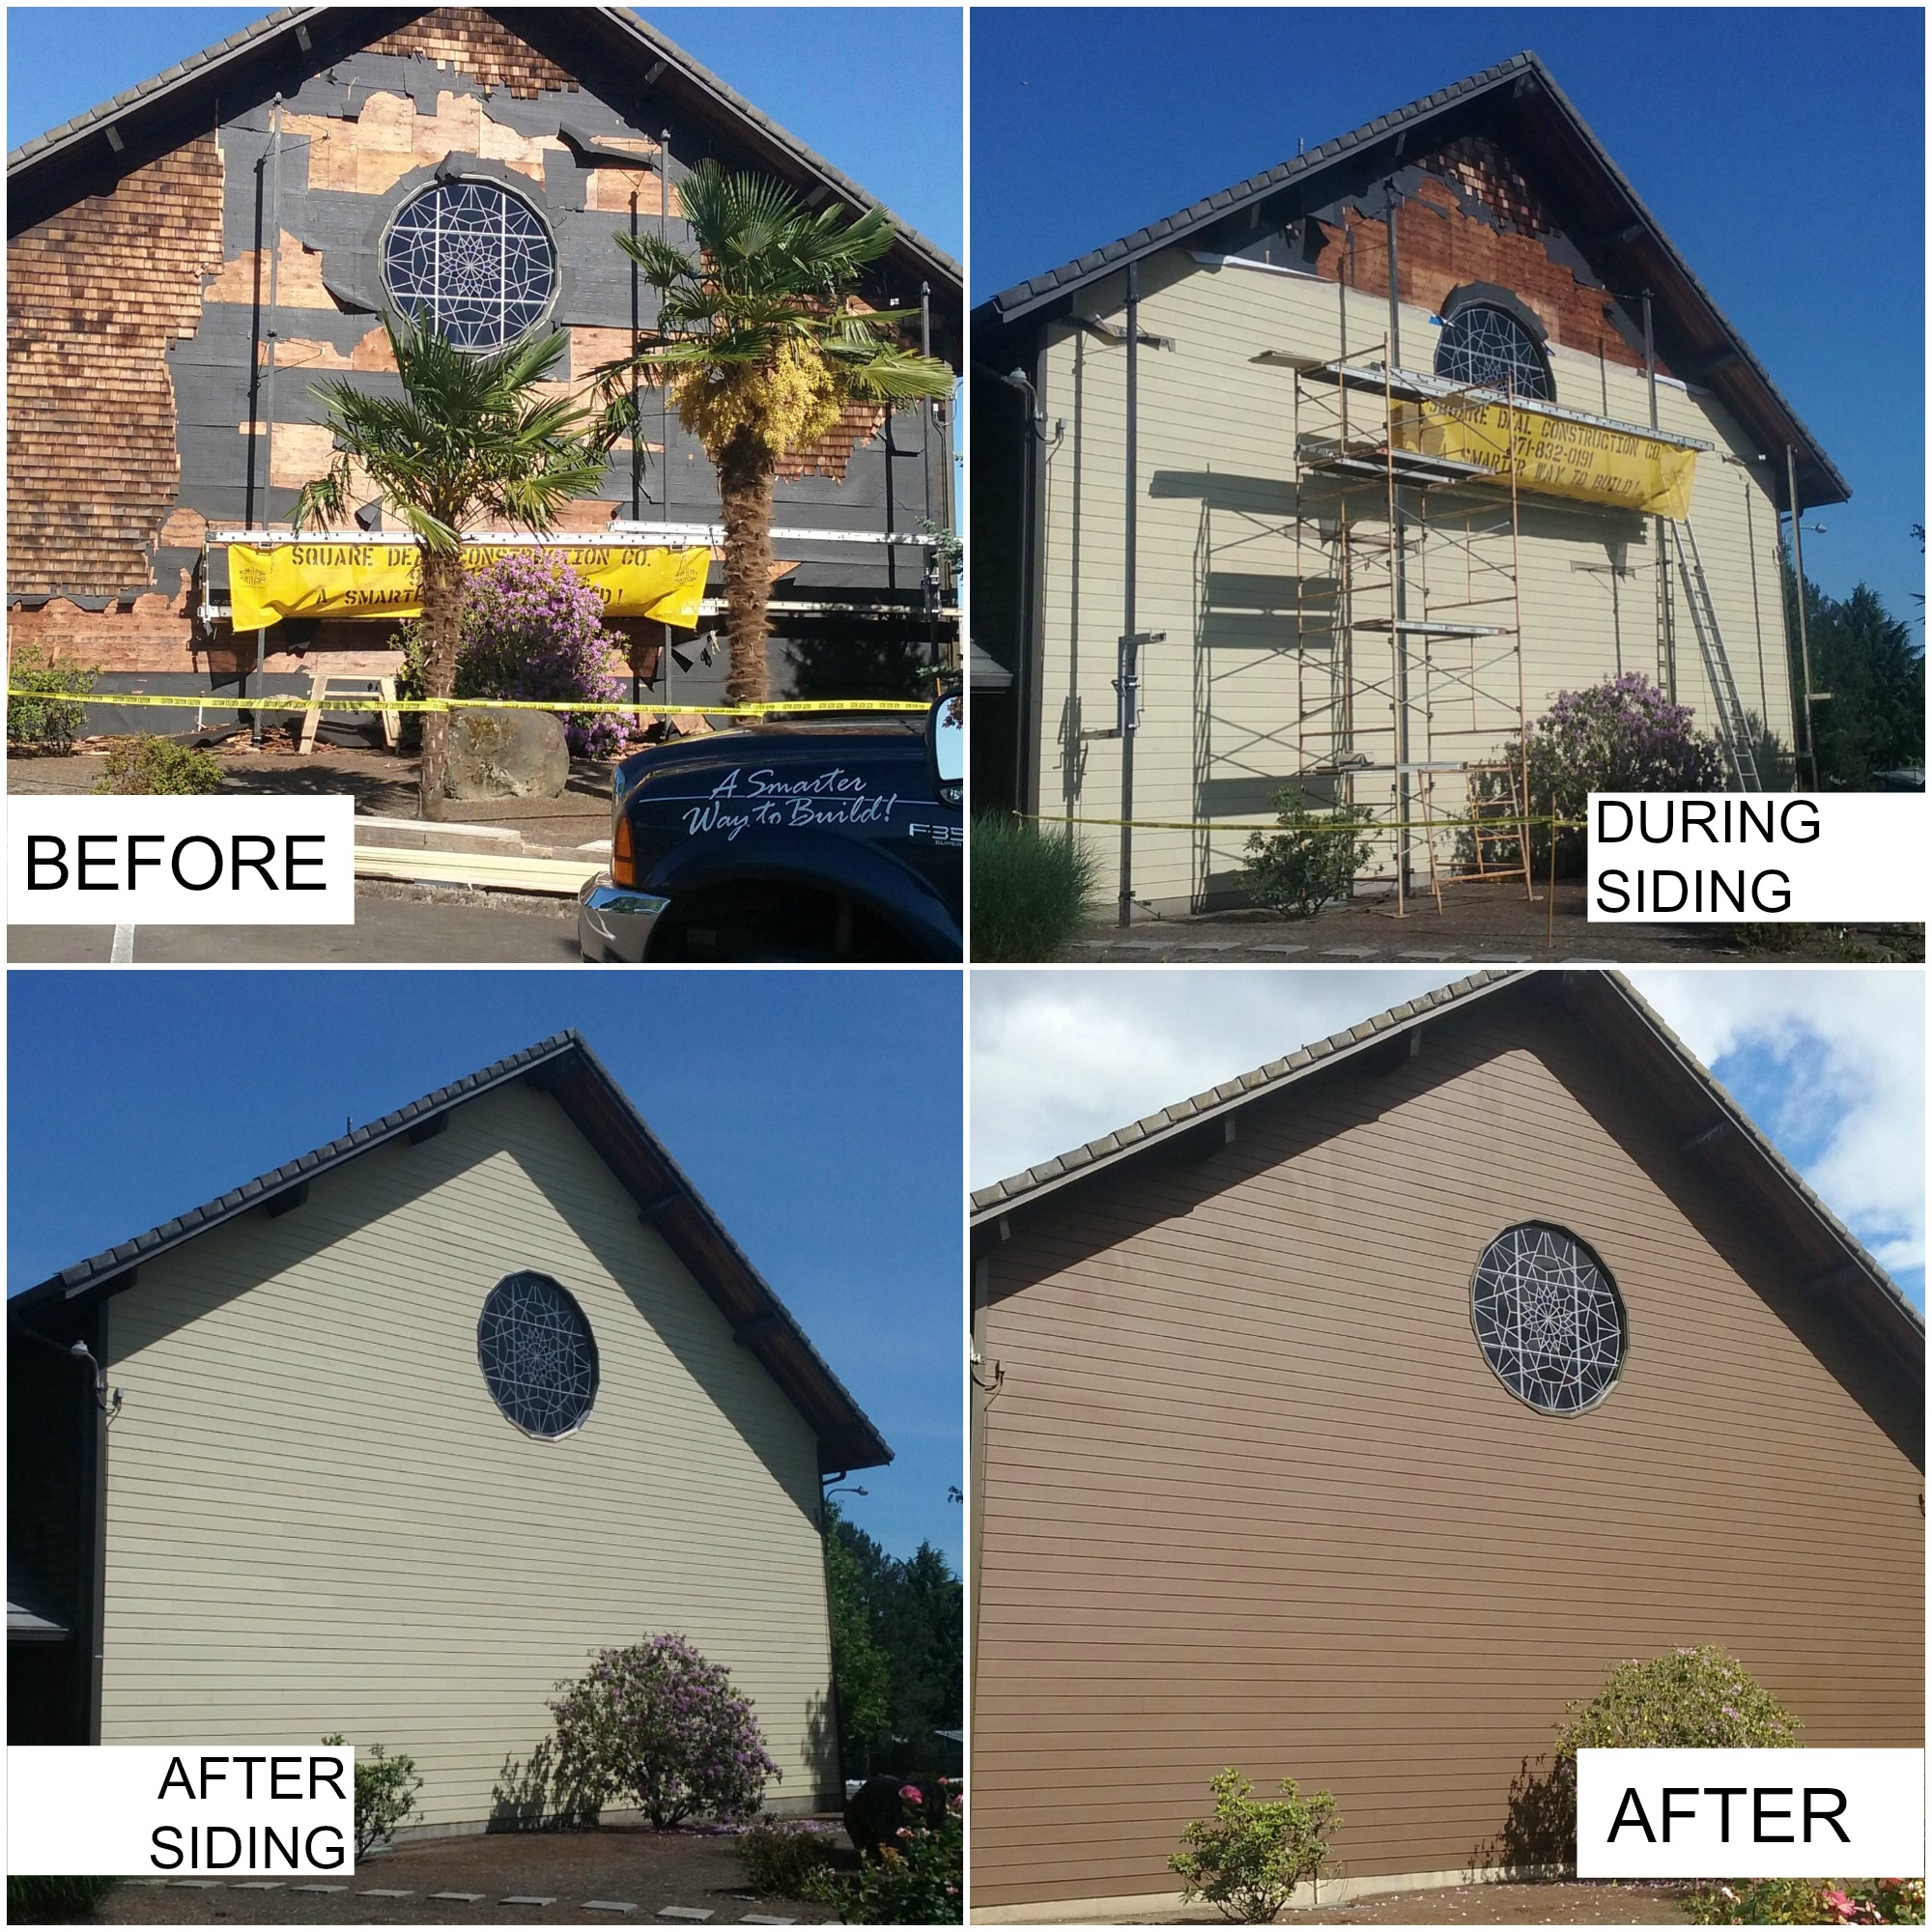 siding before during after.jpg